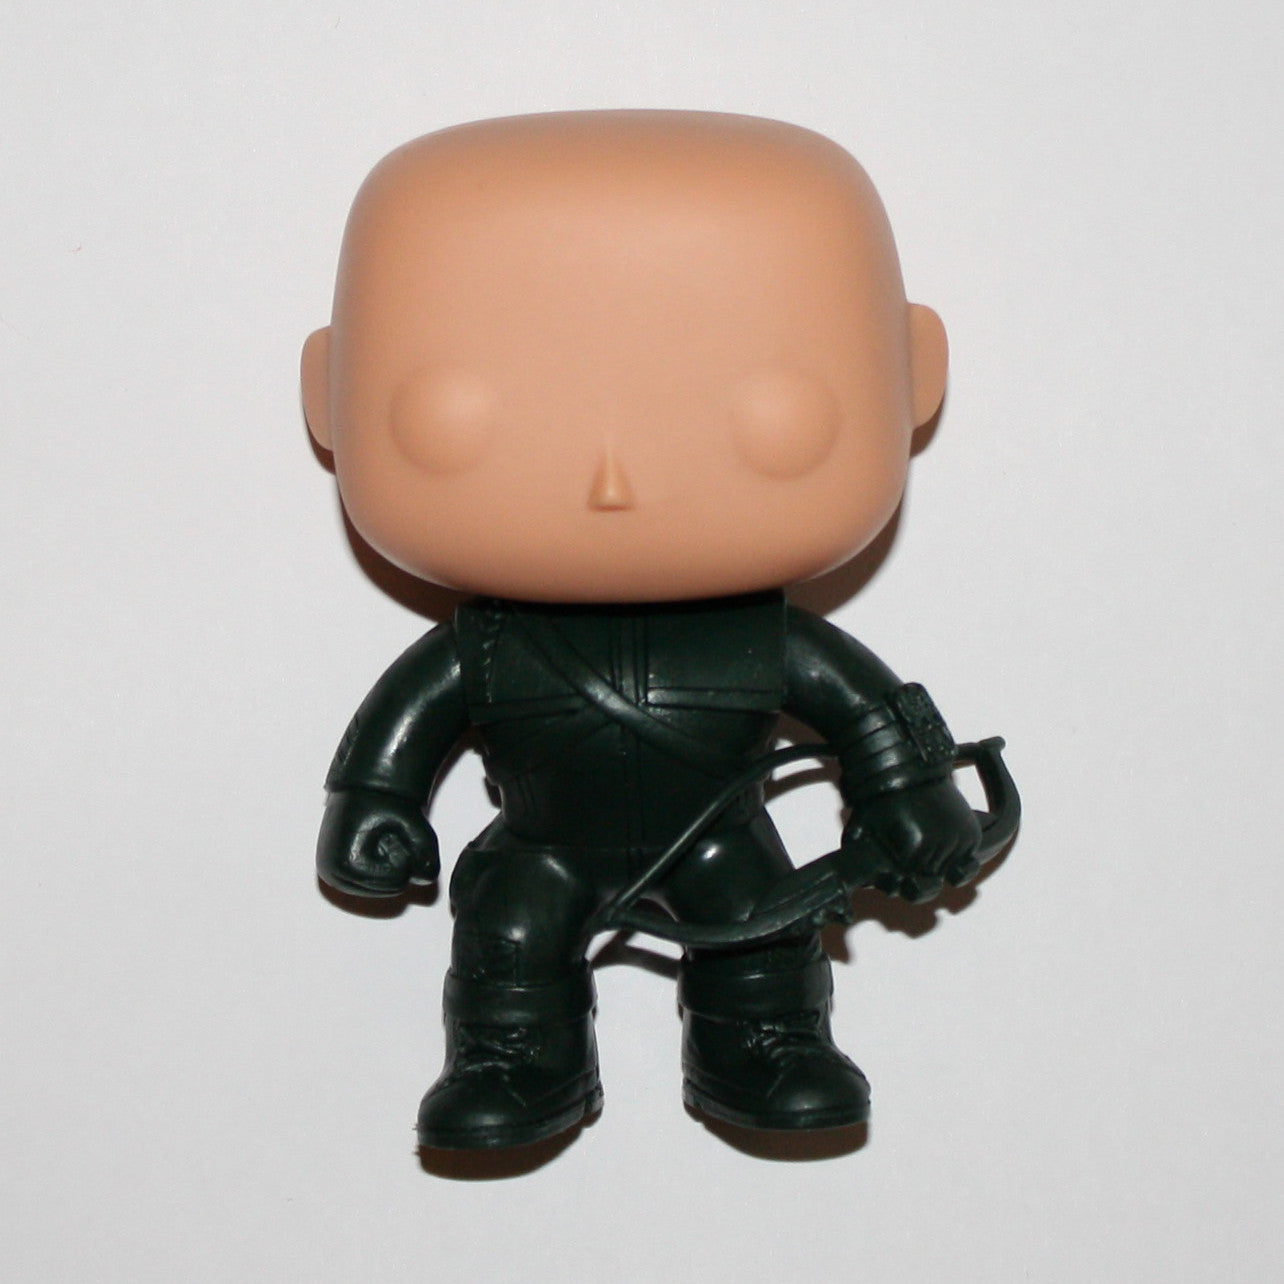 Oliver Queen [Arrow TV Series] Proto - Fugitive Toys